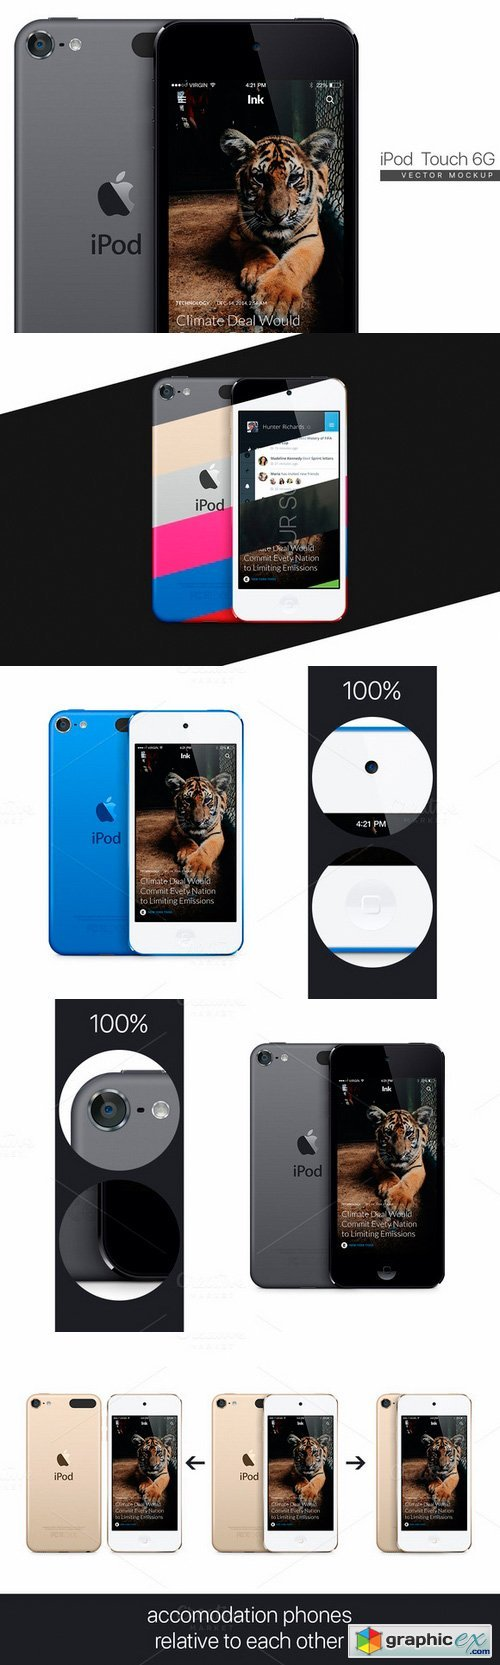 iPod Touch 6G (2015) vector MockUp